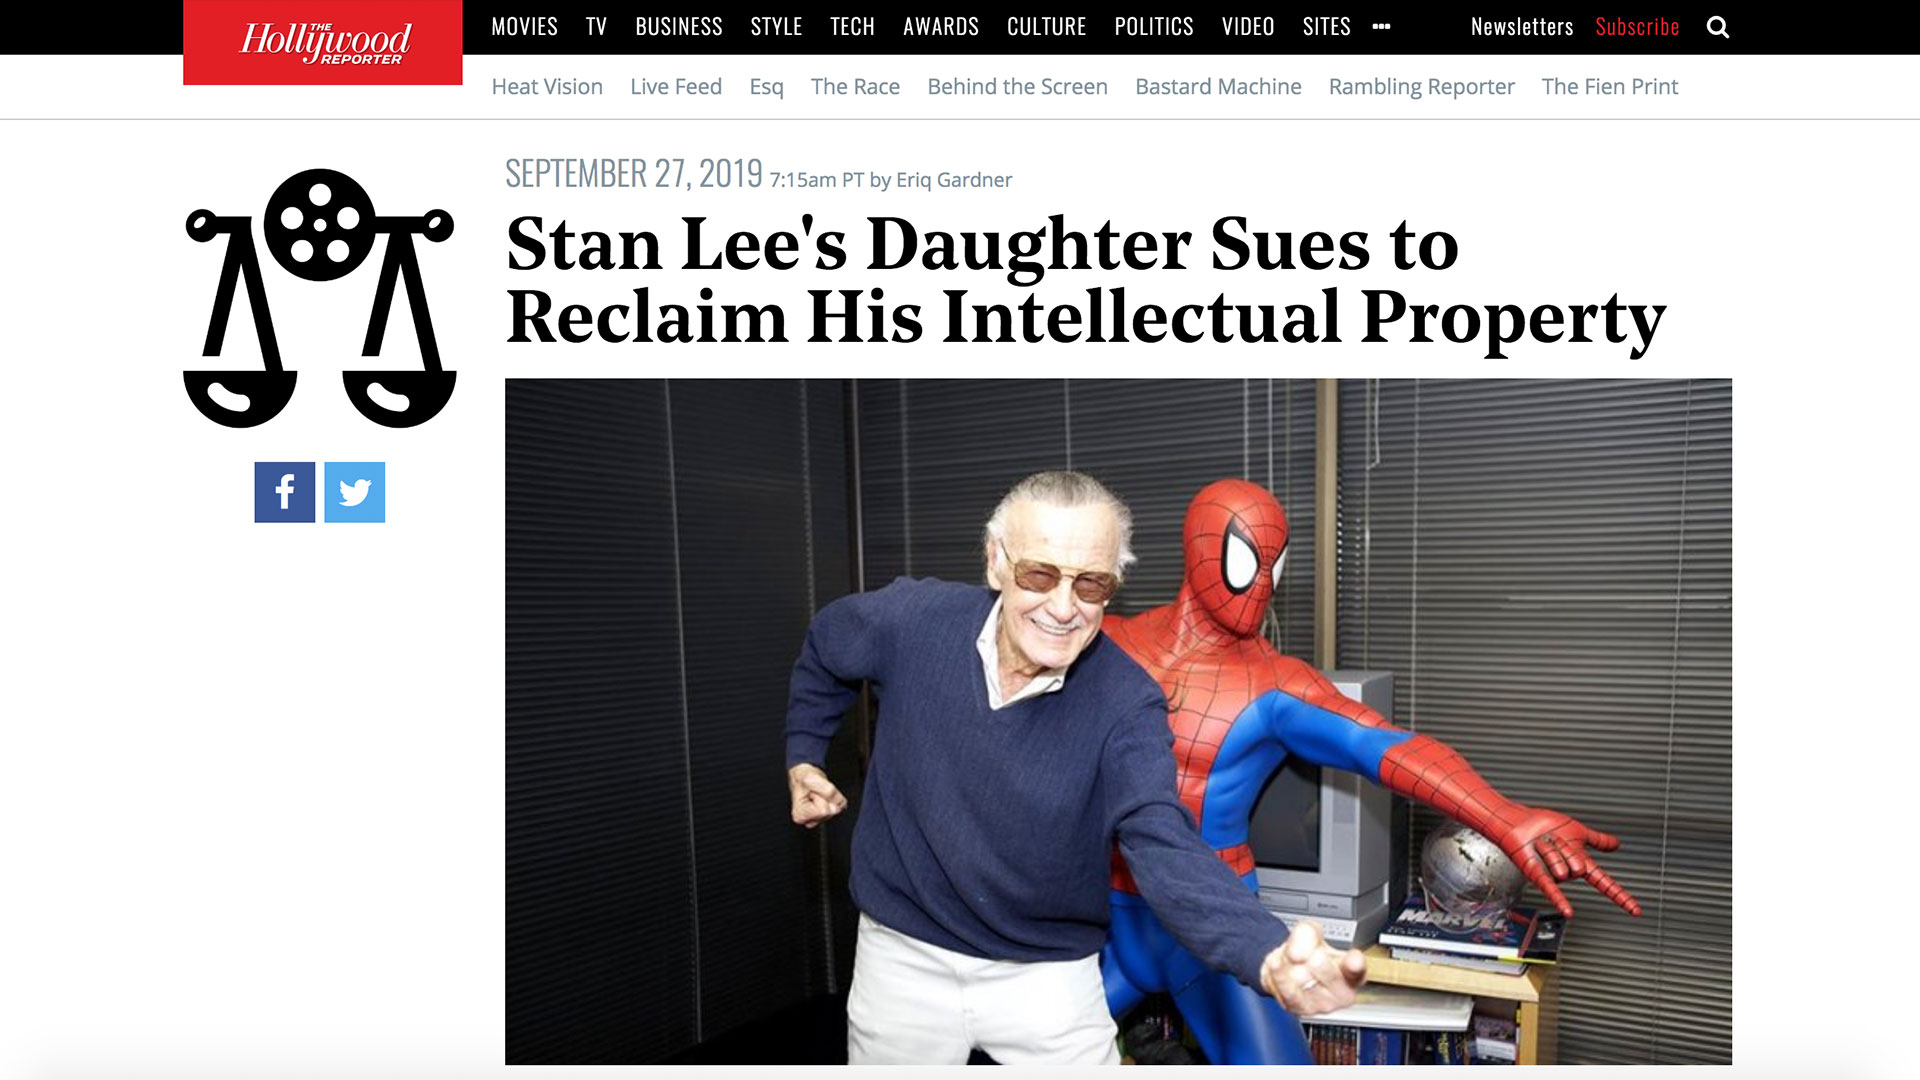 Fairness Rocks News Stan Lee's Daughter Sues to Reclaim His Intellectual Property